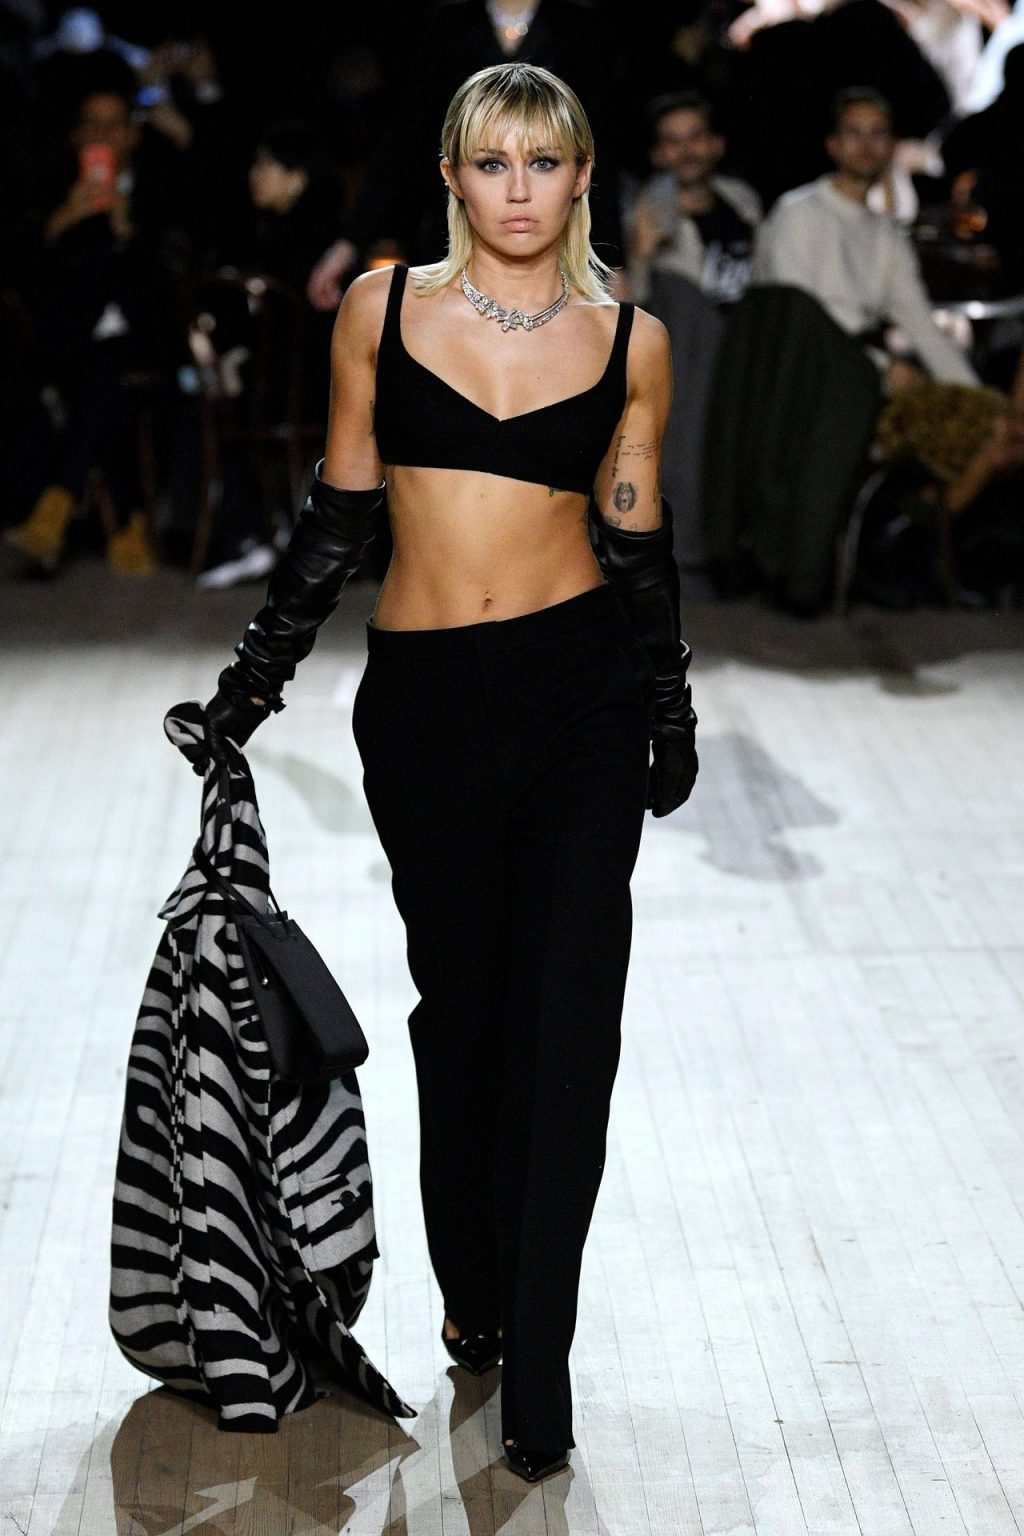 Miley Cyrus Sexy The Fappening Blog 12 4 1024x1536 - Miley Cyrus Walks the Runway at the Marc Jacobs Show (22 Photos + GIF & Video)